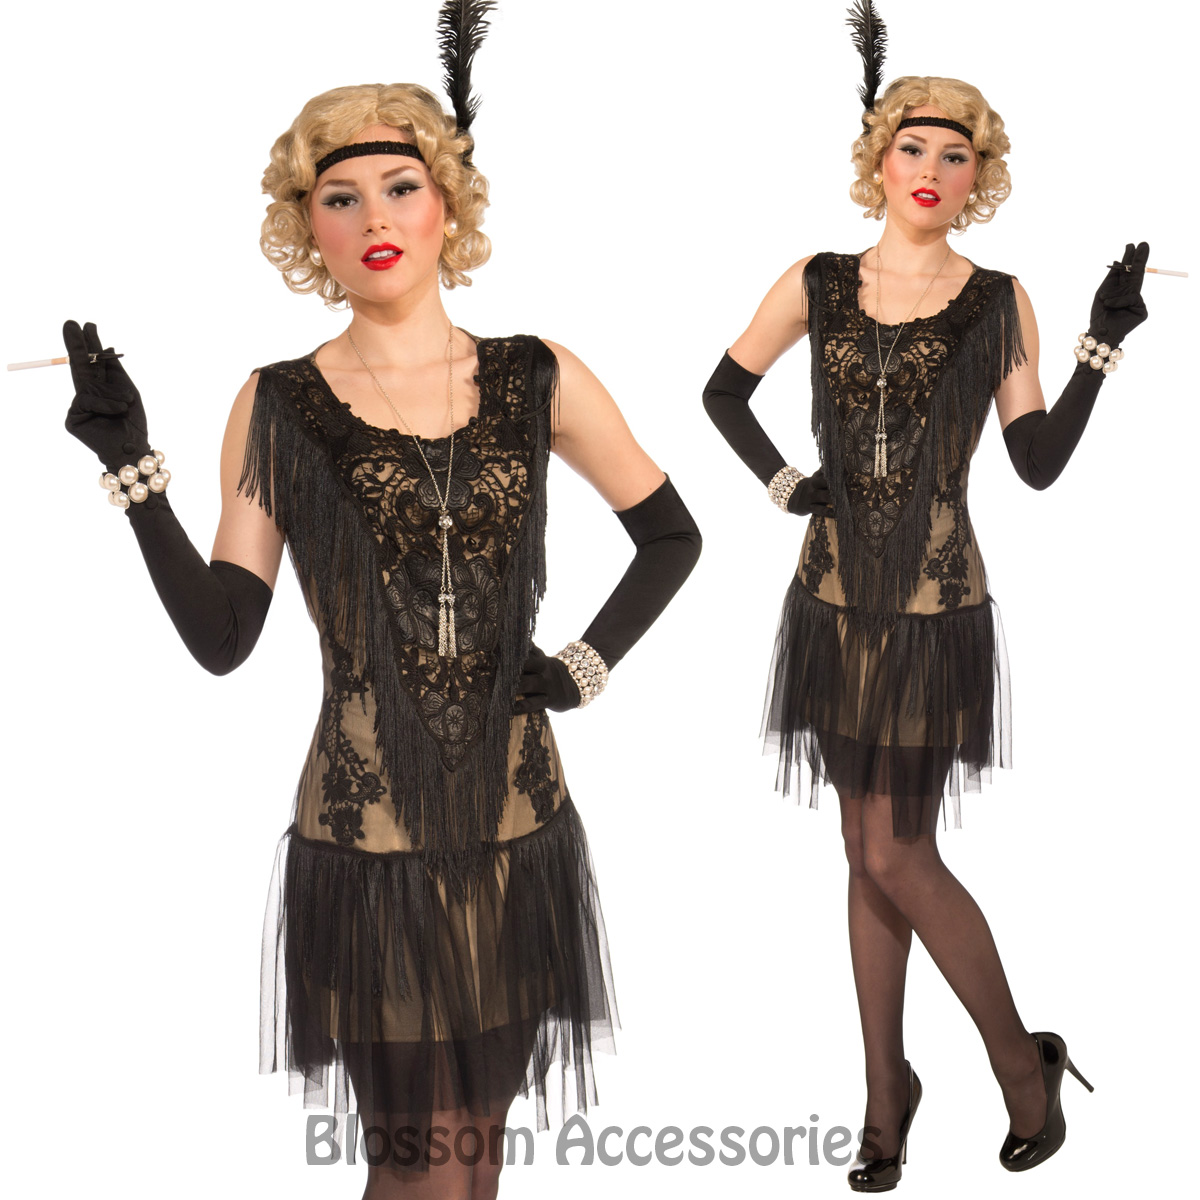 Cl798 lacey lindy flapper roaring 20s 1920s costume charleston image is loading cl798 lacey lindy flapper roaring 20s 1920s costume solutioingenieria Gallery